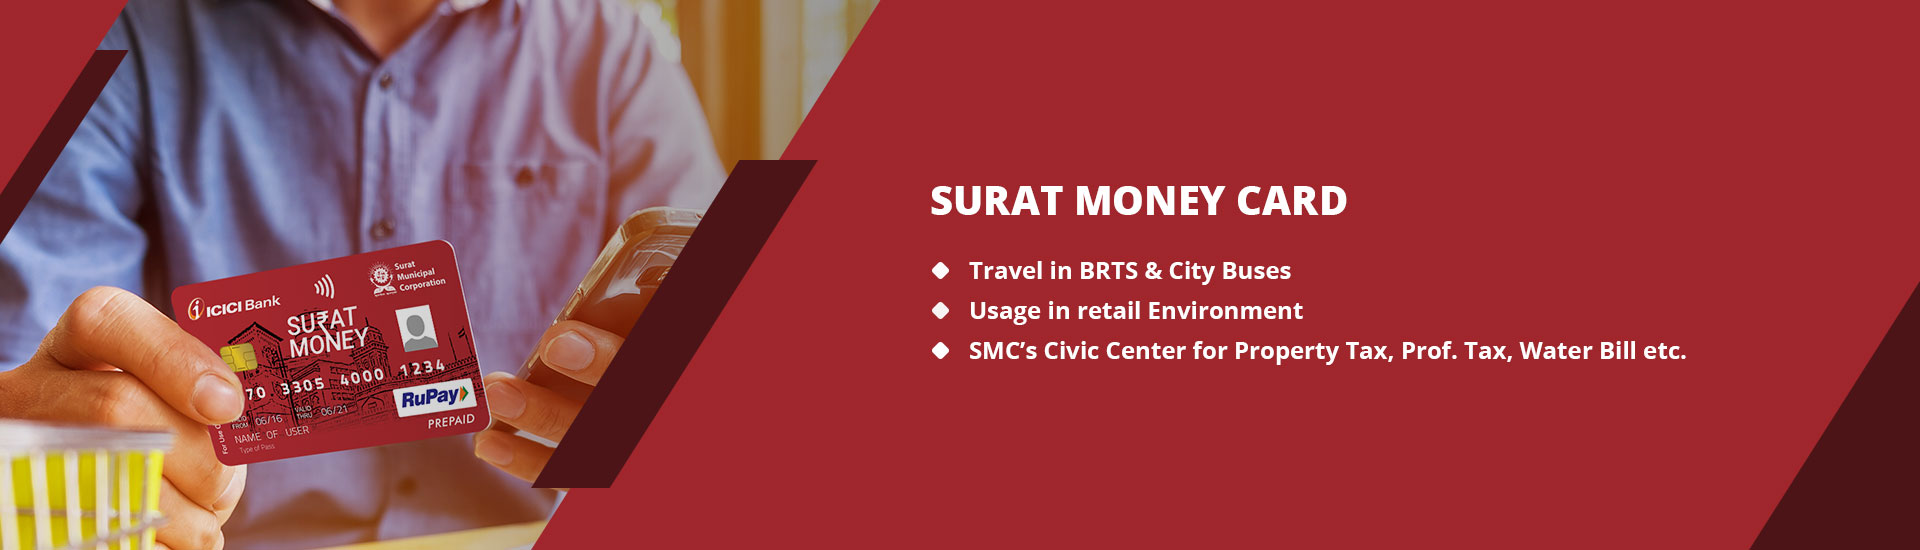 Surat Money Card - Surat Municipal Corporation